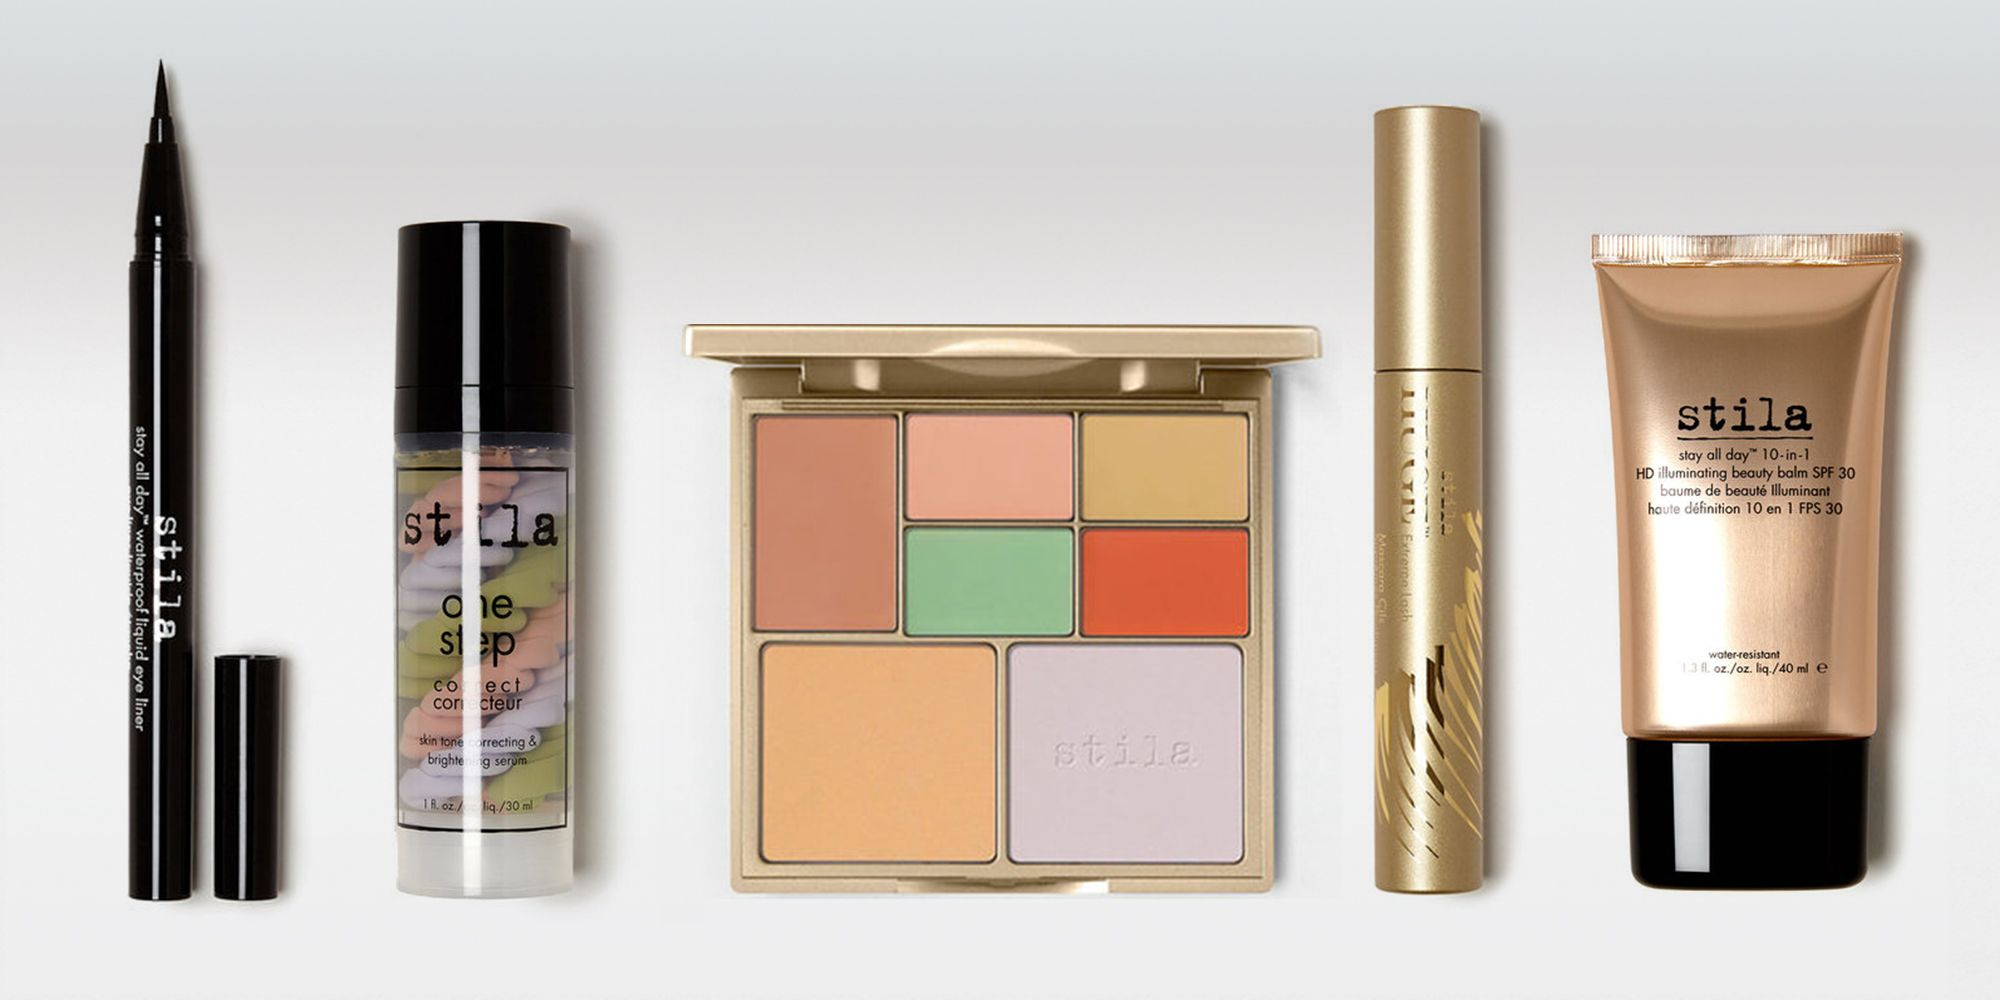 8 Beauty Essentials From Stila That Actually Stay All Day